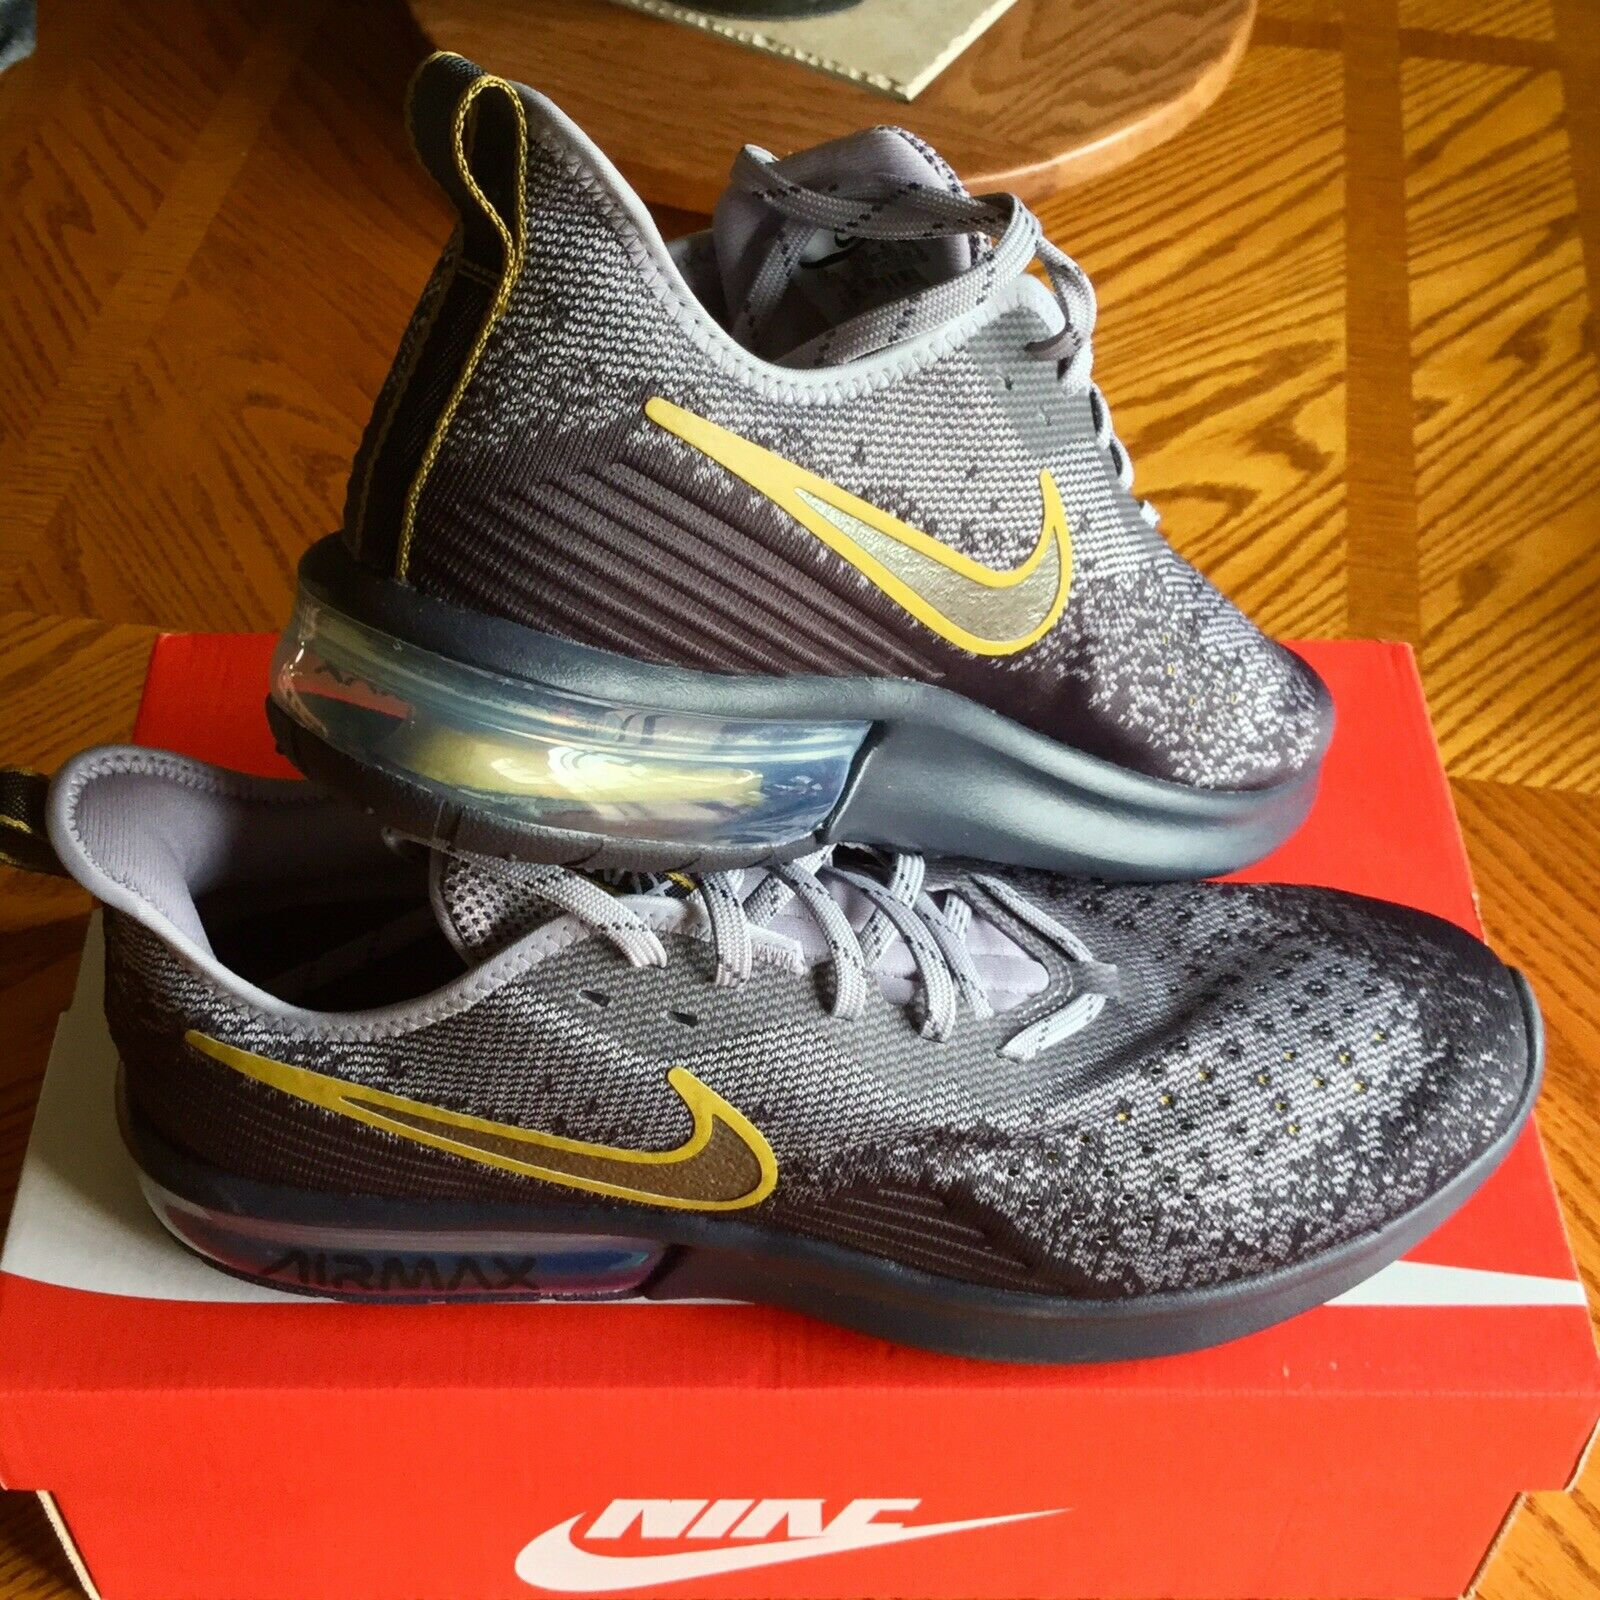 NEW NIKE AIR MAX SEQUENT 4 Gridiron Mtlc Pwtr AO4485 003 Running shoes 12.5